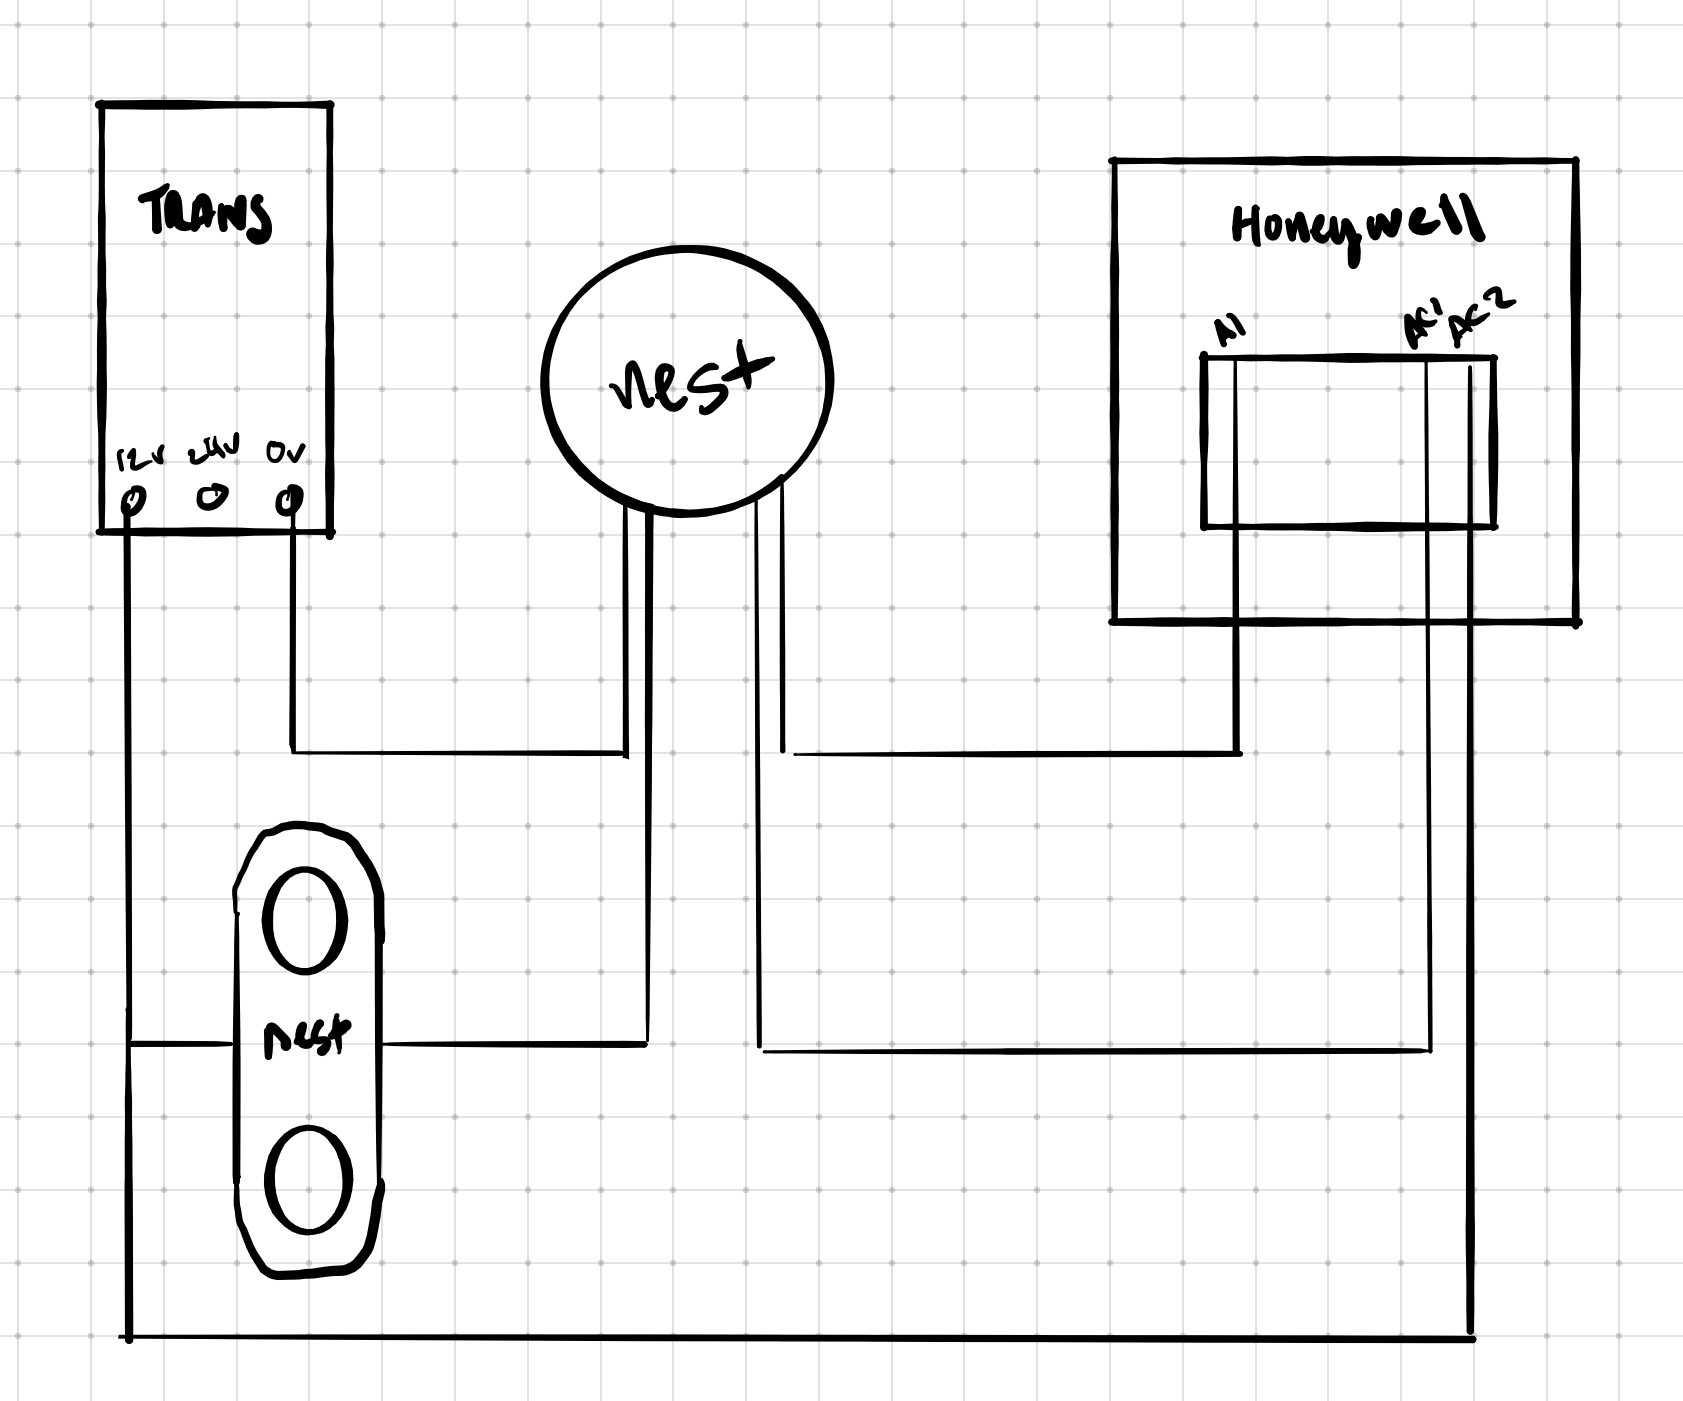 Wiring Diagram For Nest Hello To Honeywell Wired Chime Google